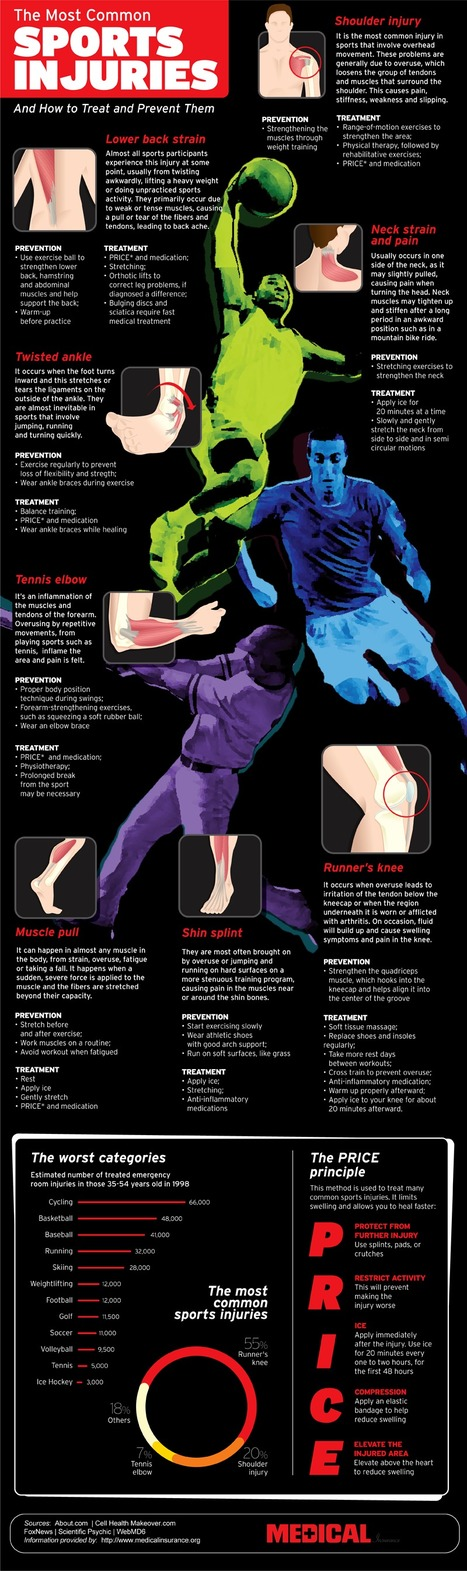 Most Common Sports Injuries And Treatments #Infographic | HealthSmart | Scoop.it